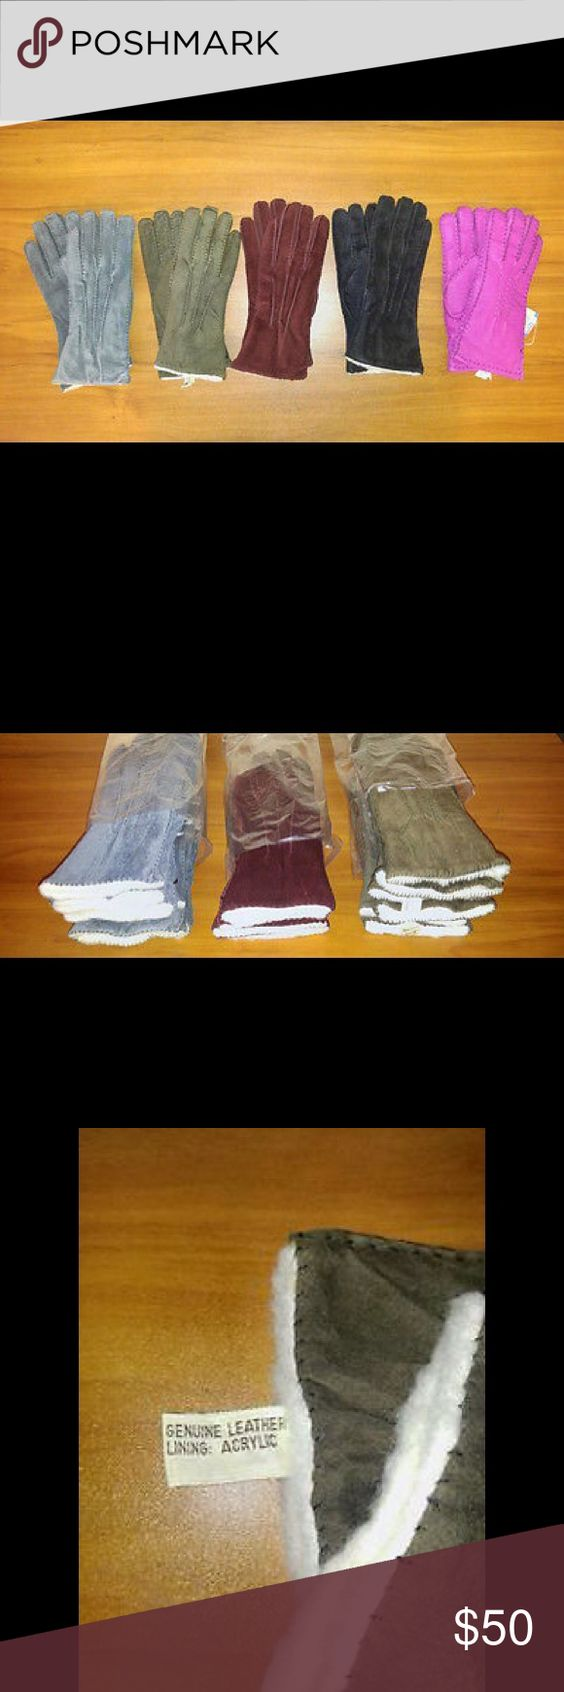 Ladies leather gloves extra small - Lot Of Dozen 12 Ladies Leather Gloves Brand New Ladies Suede Leather Gloves